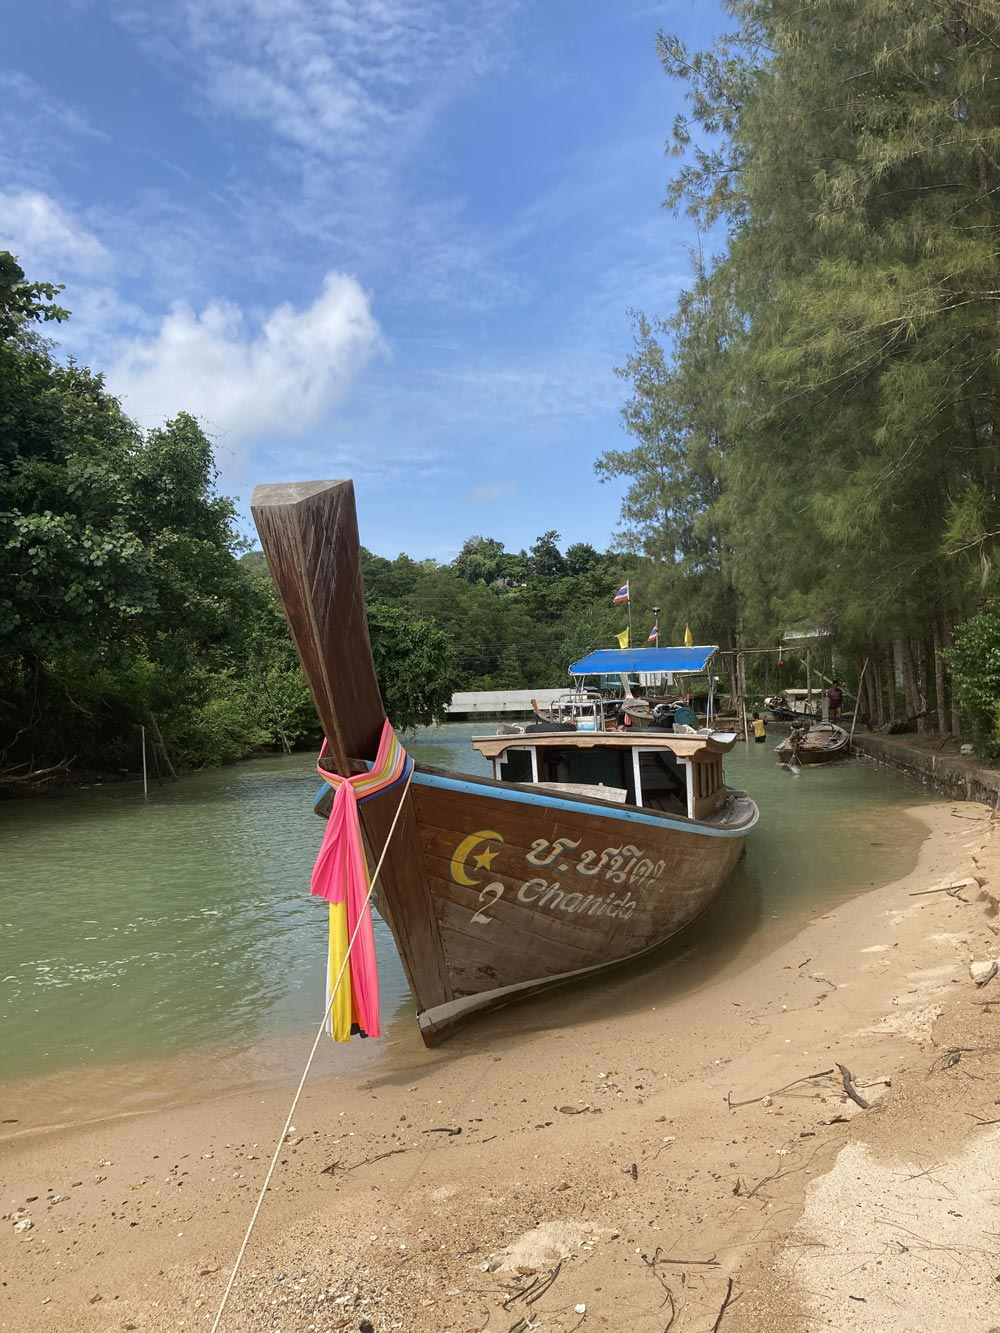 Koh Yao Noi presents so many beautiful photo opportunities like this long tail boat waiting for the tide